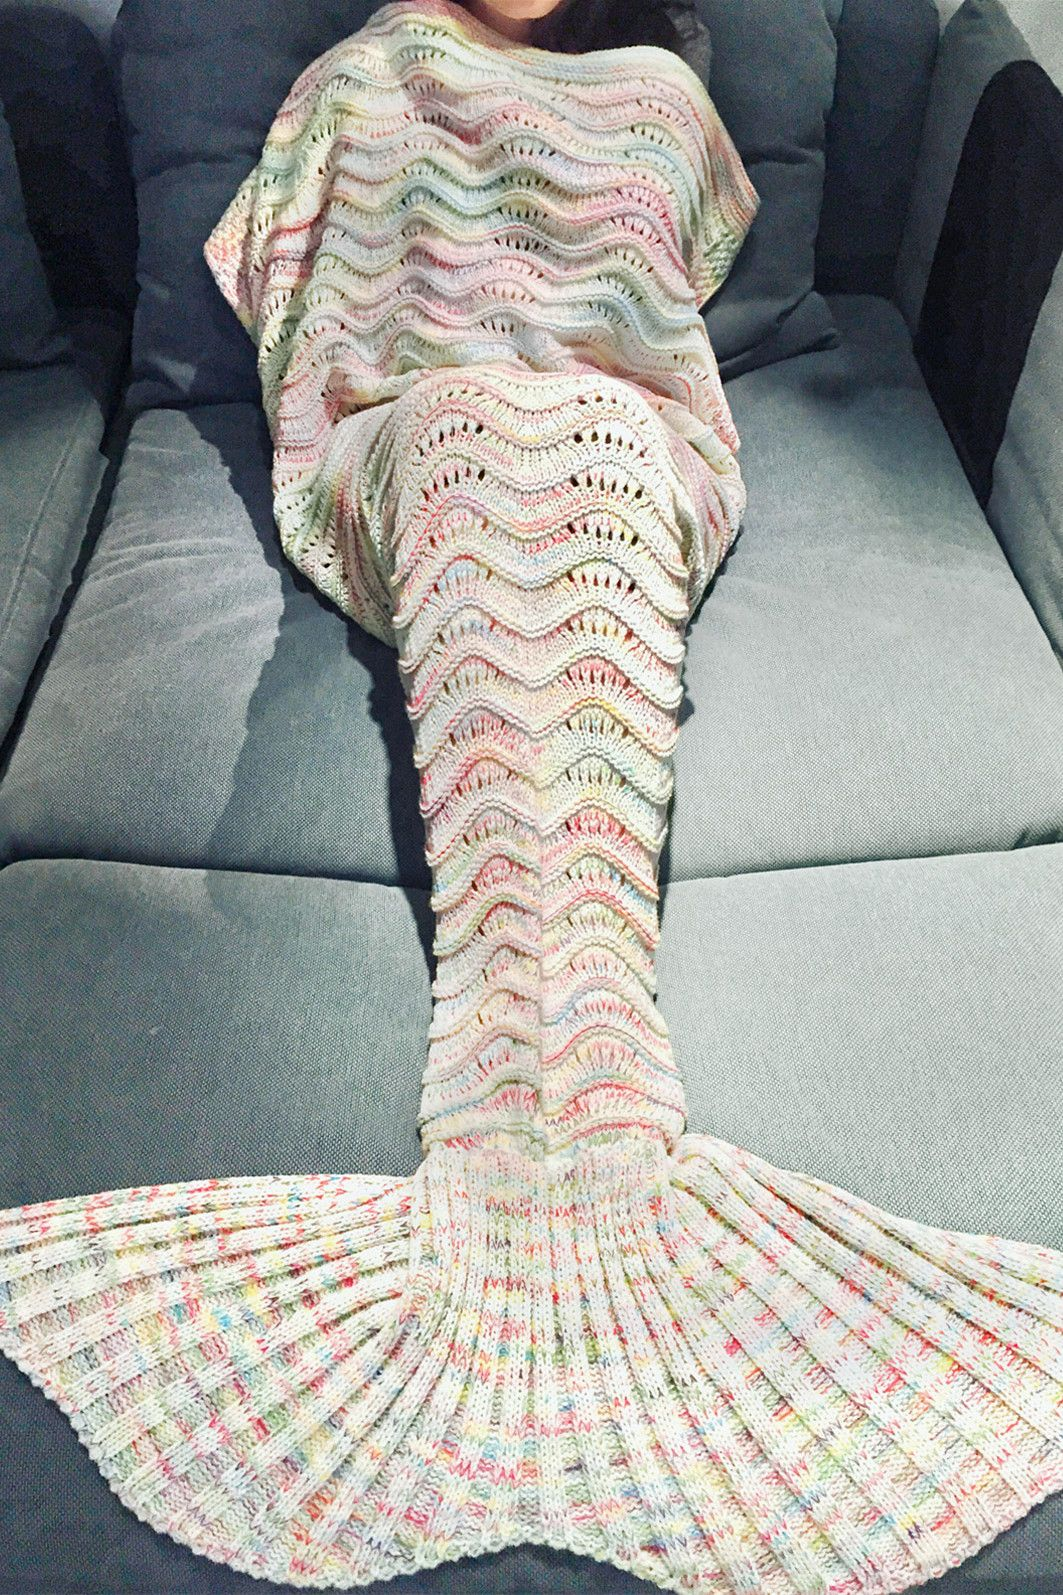 Comfortable Multicolor Knitted Throw Mermaid Tail Design Blanket For ...